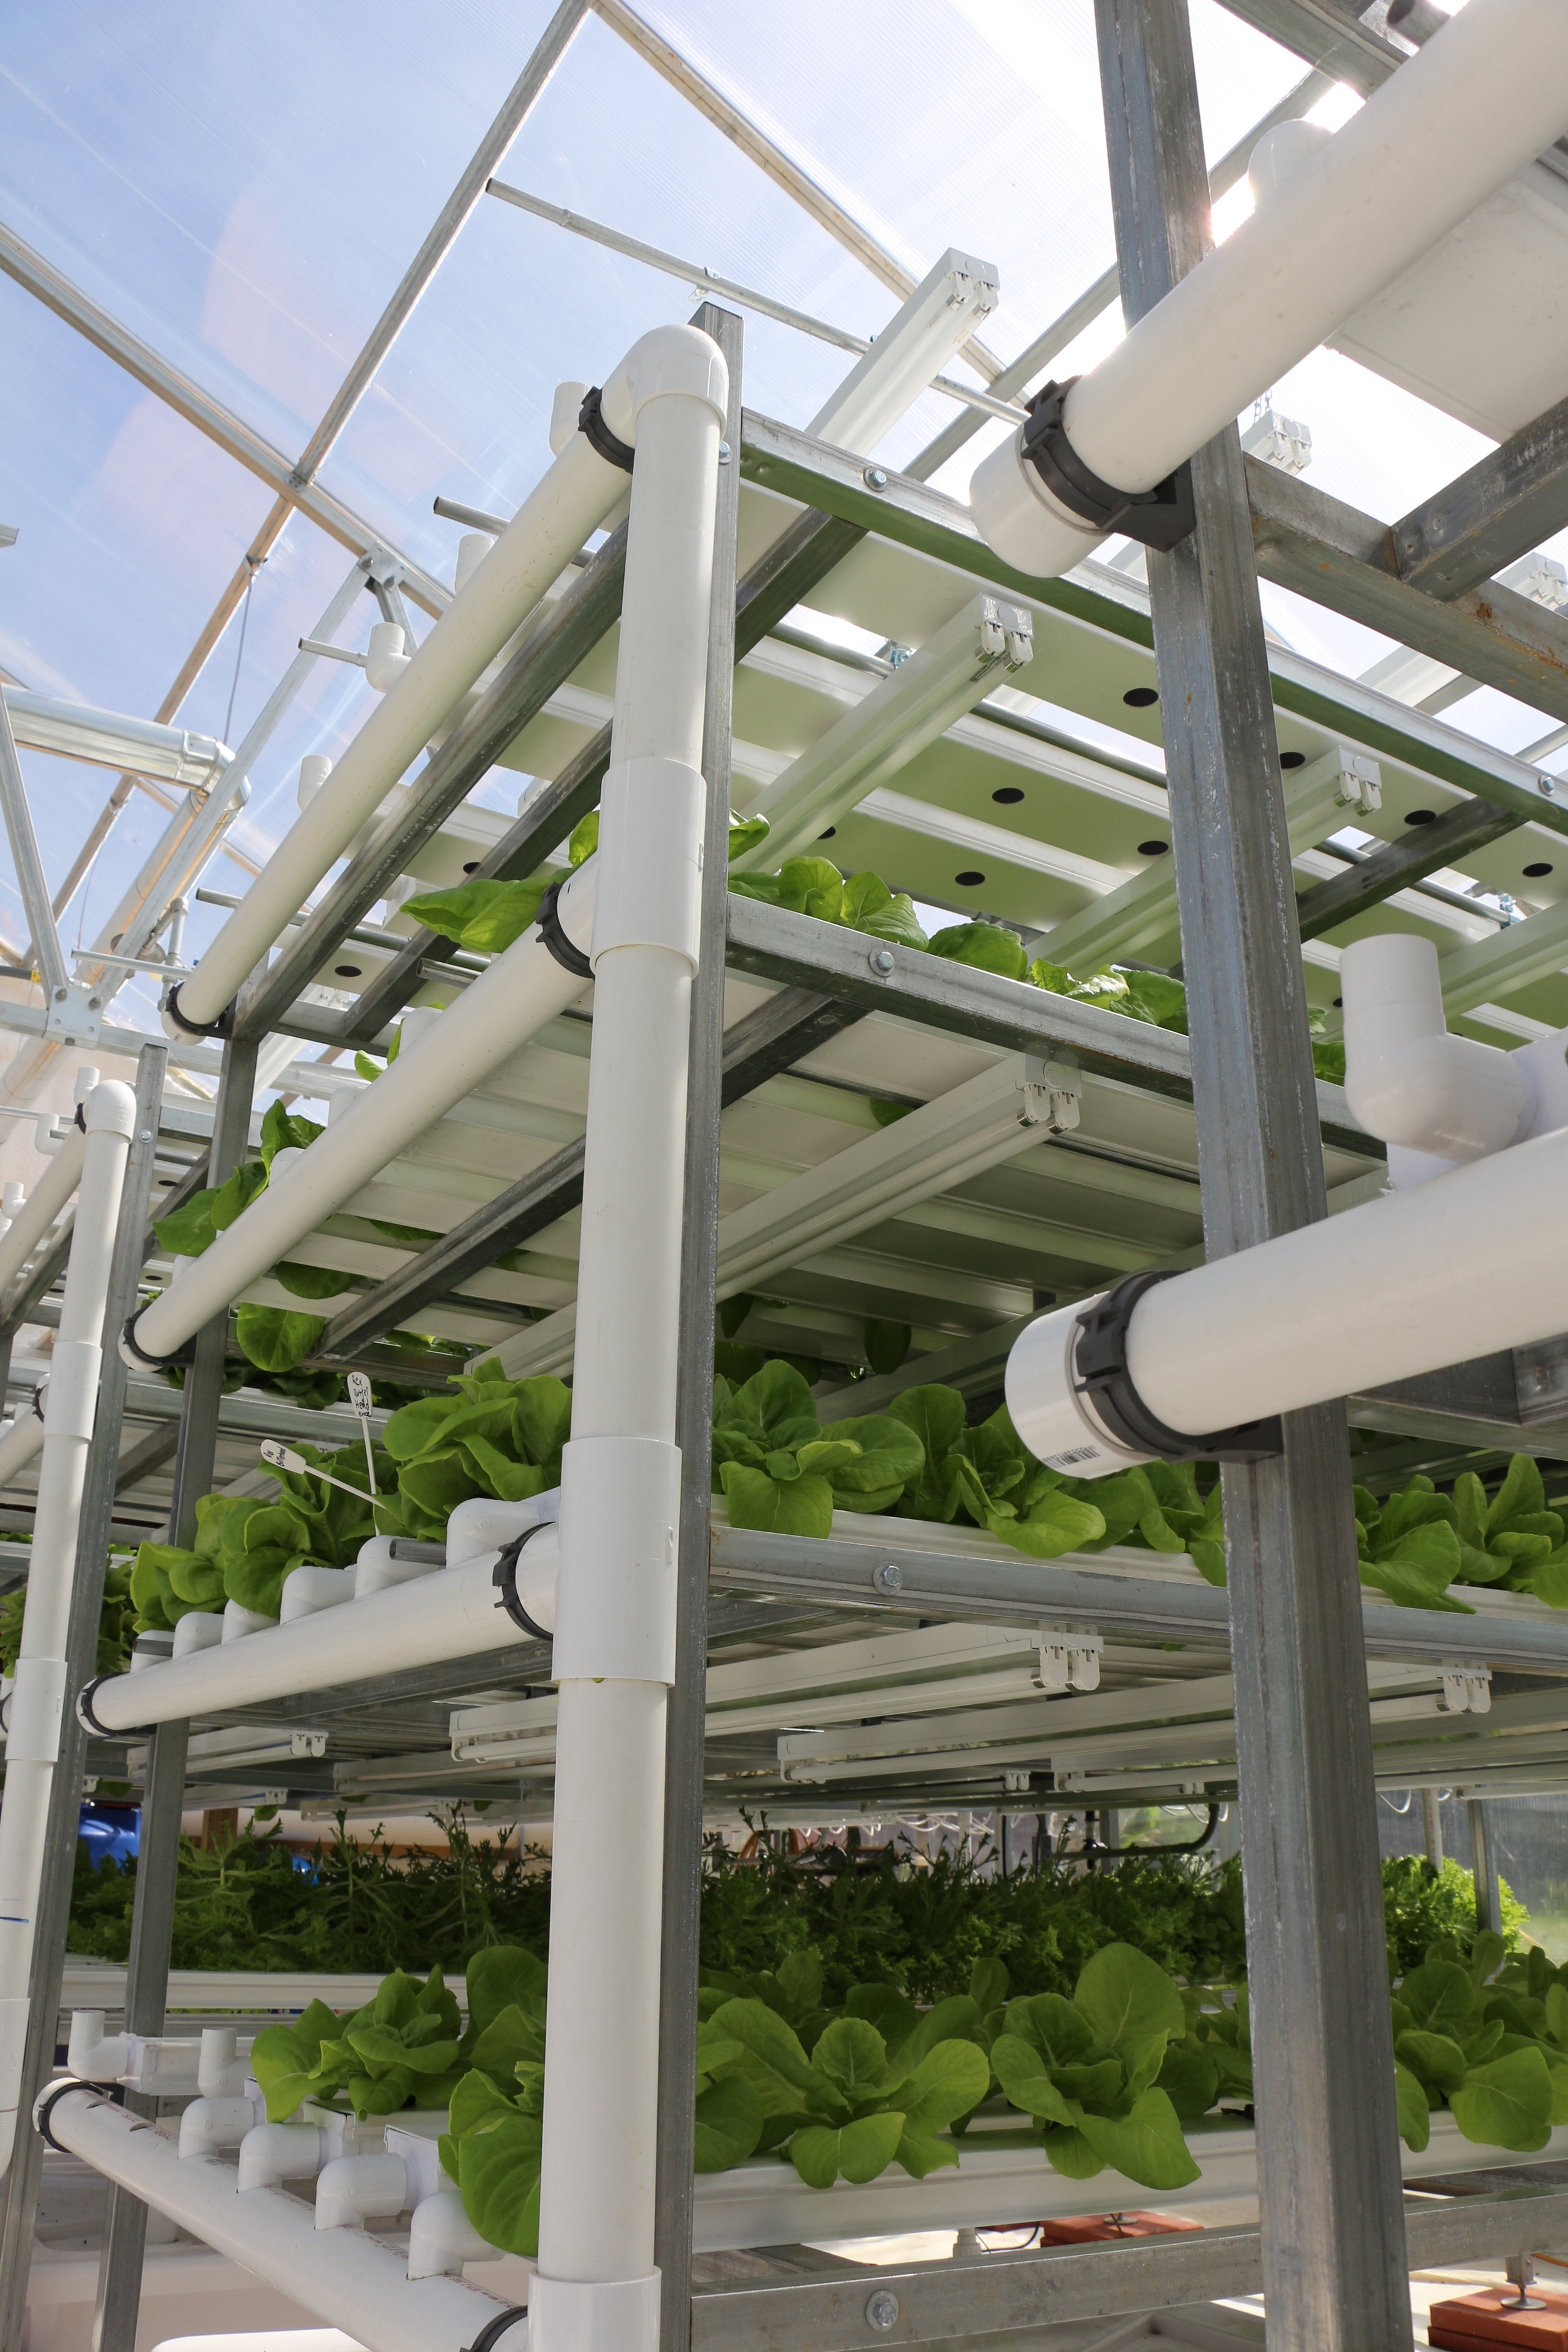 Photo taken of CEA Farms lettuce racks which are growing year round in our greenhouse!